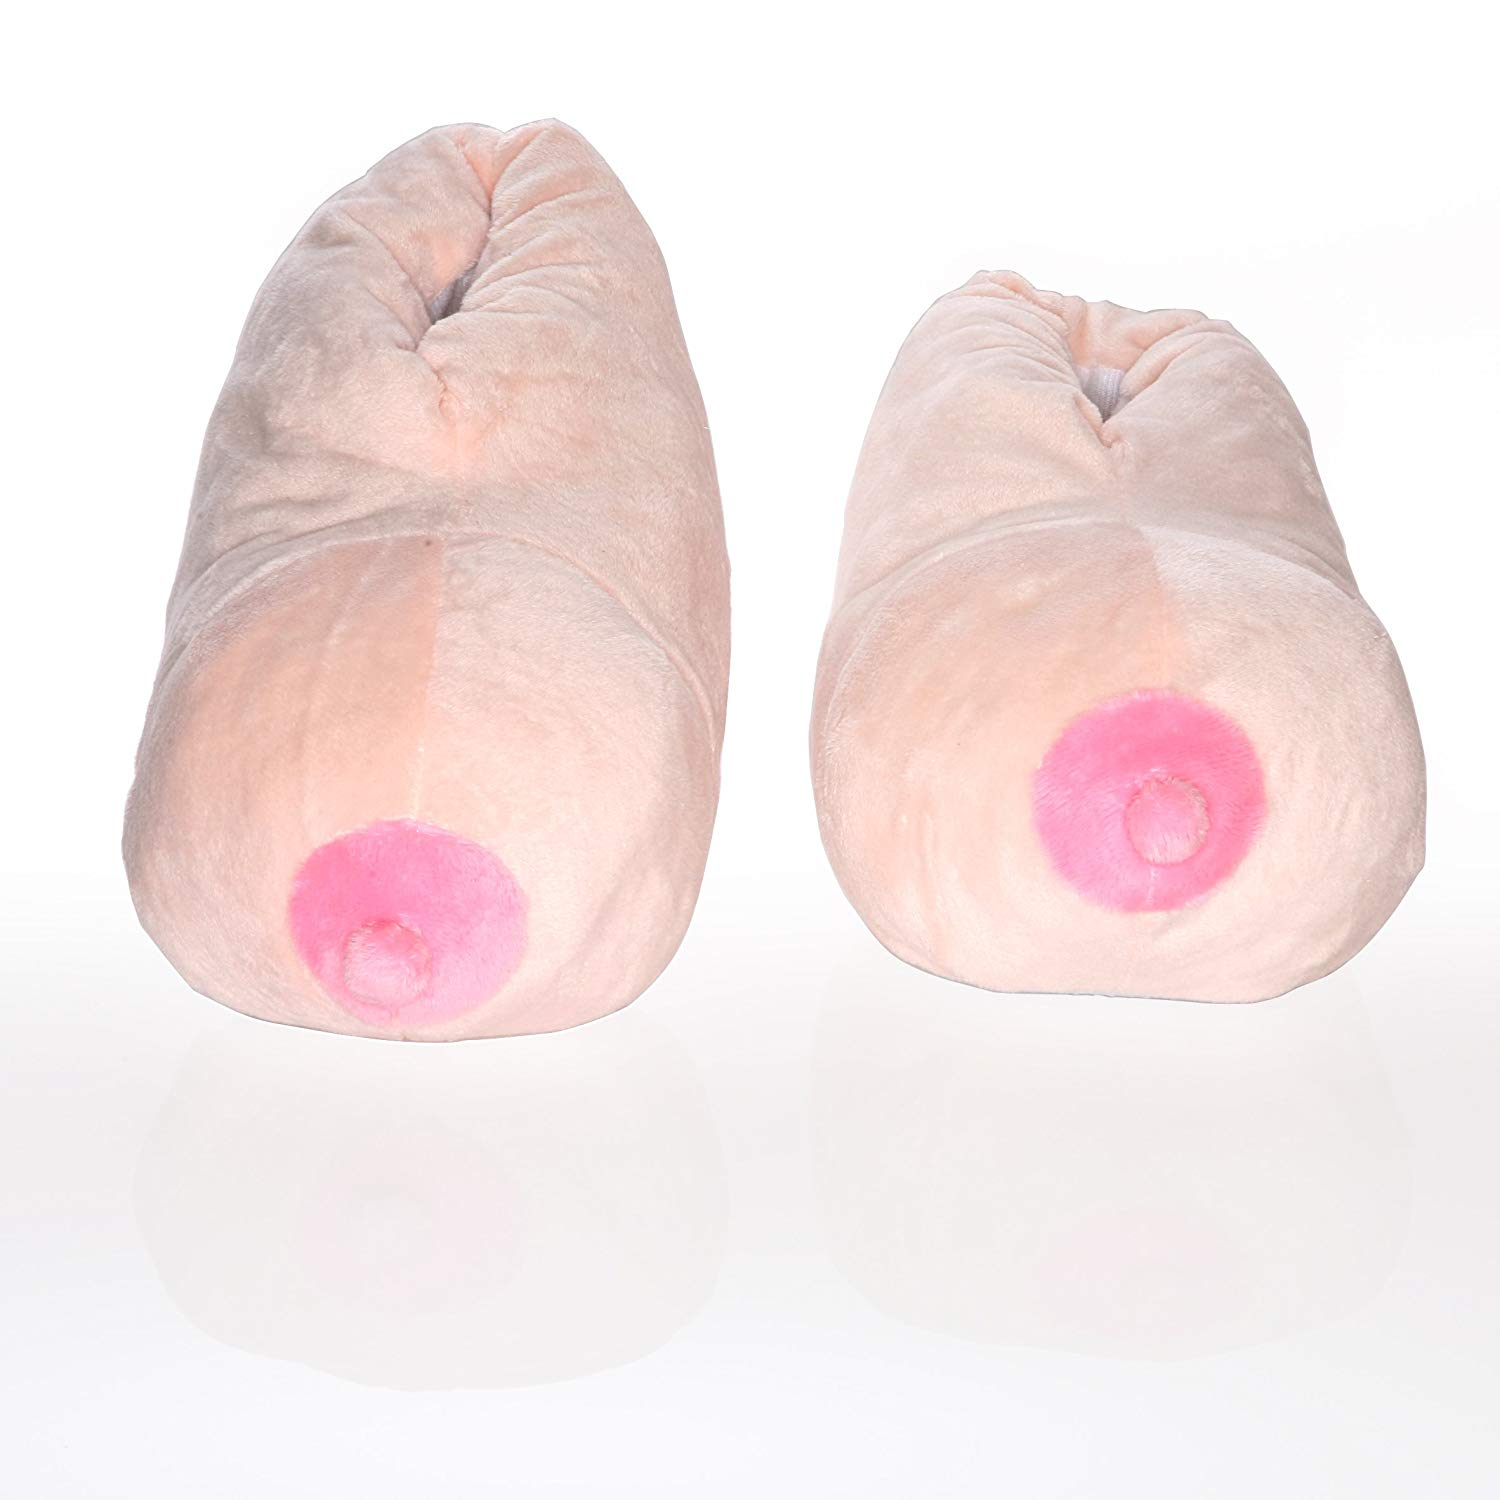 0a971b9ac Get Quotations · Deluxe Comfort Booby Bedroom Slippers, Large - Fun Unique  Gag Gift - Perfect For College